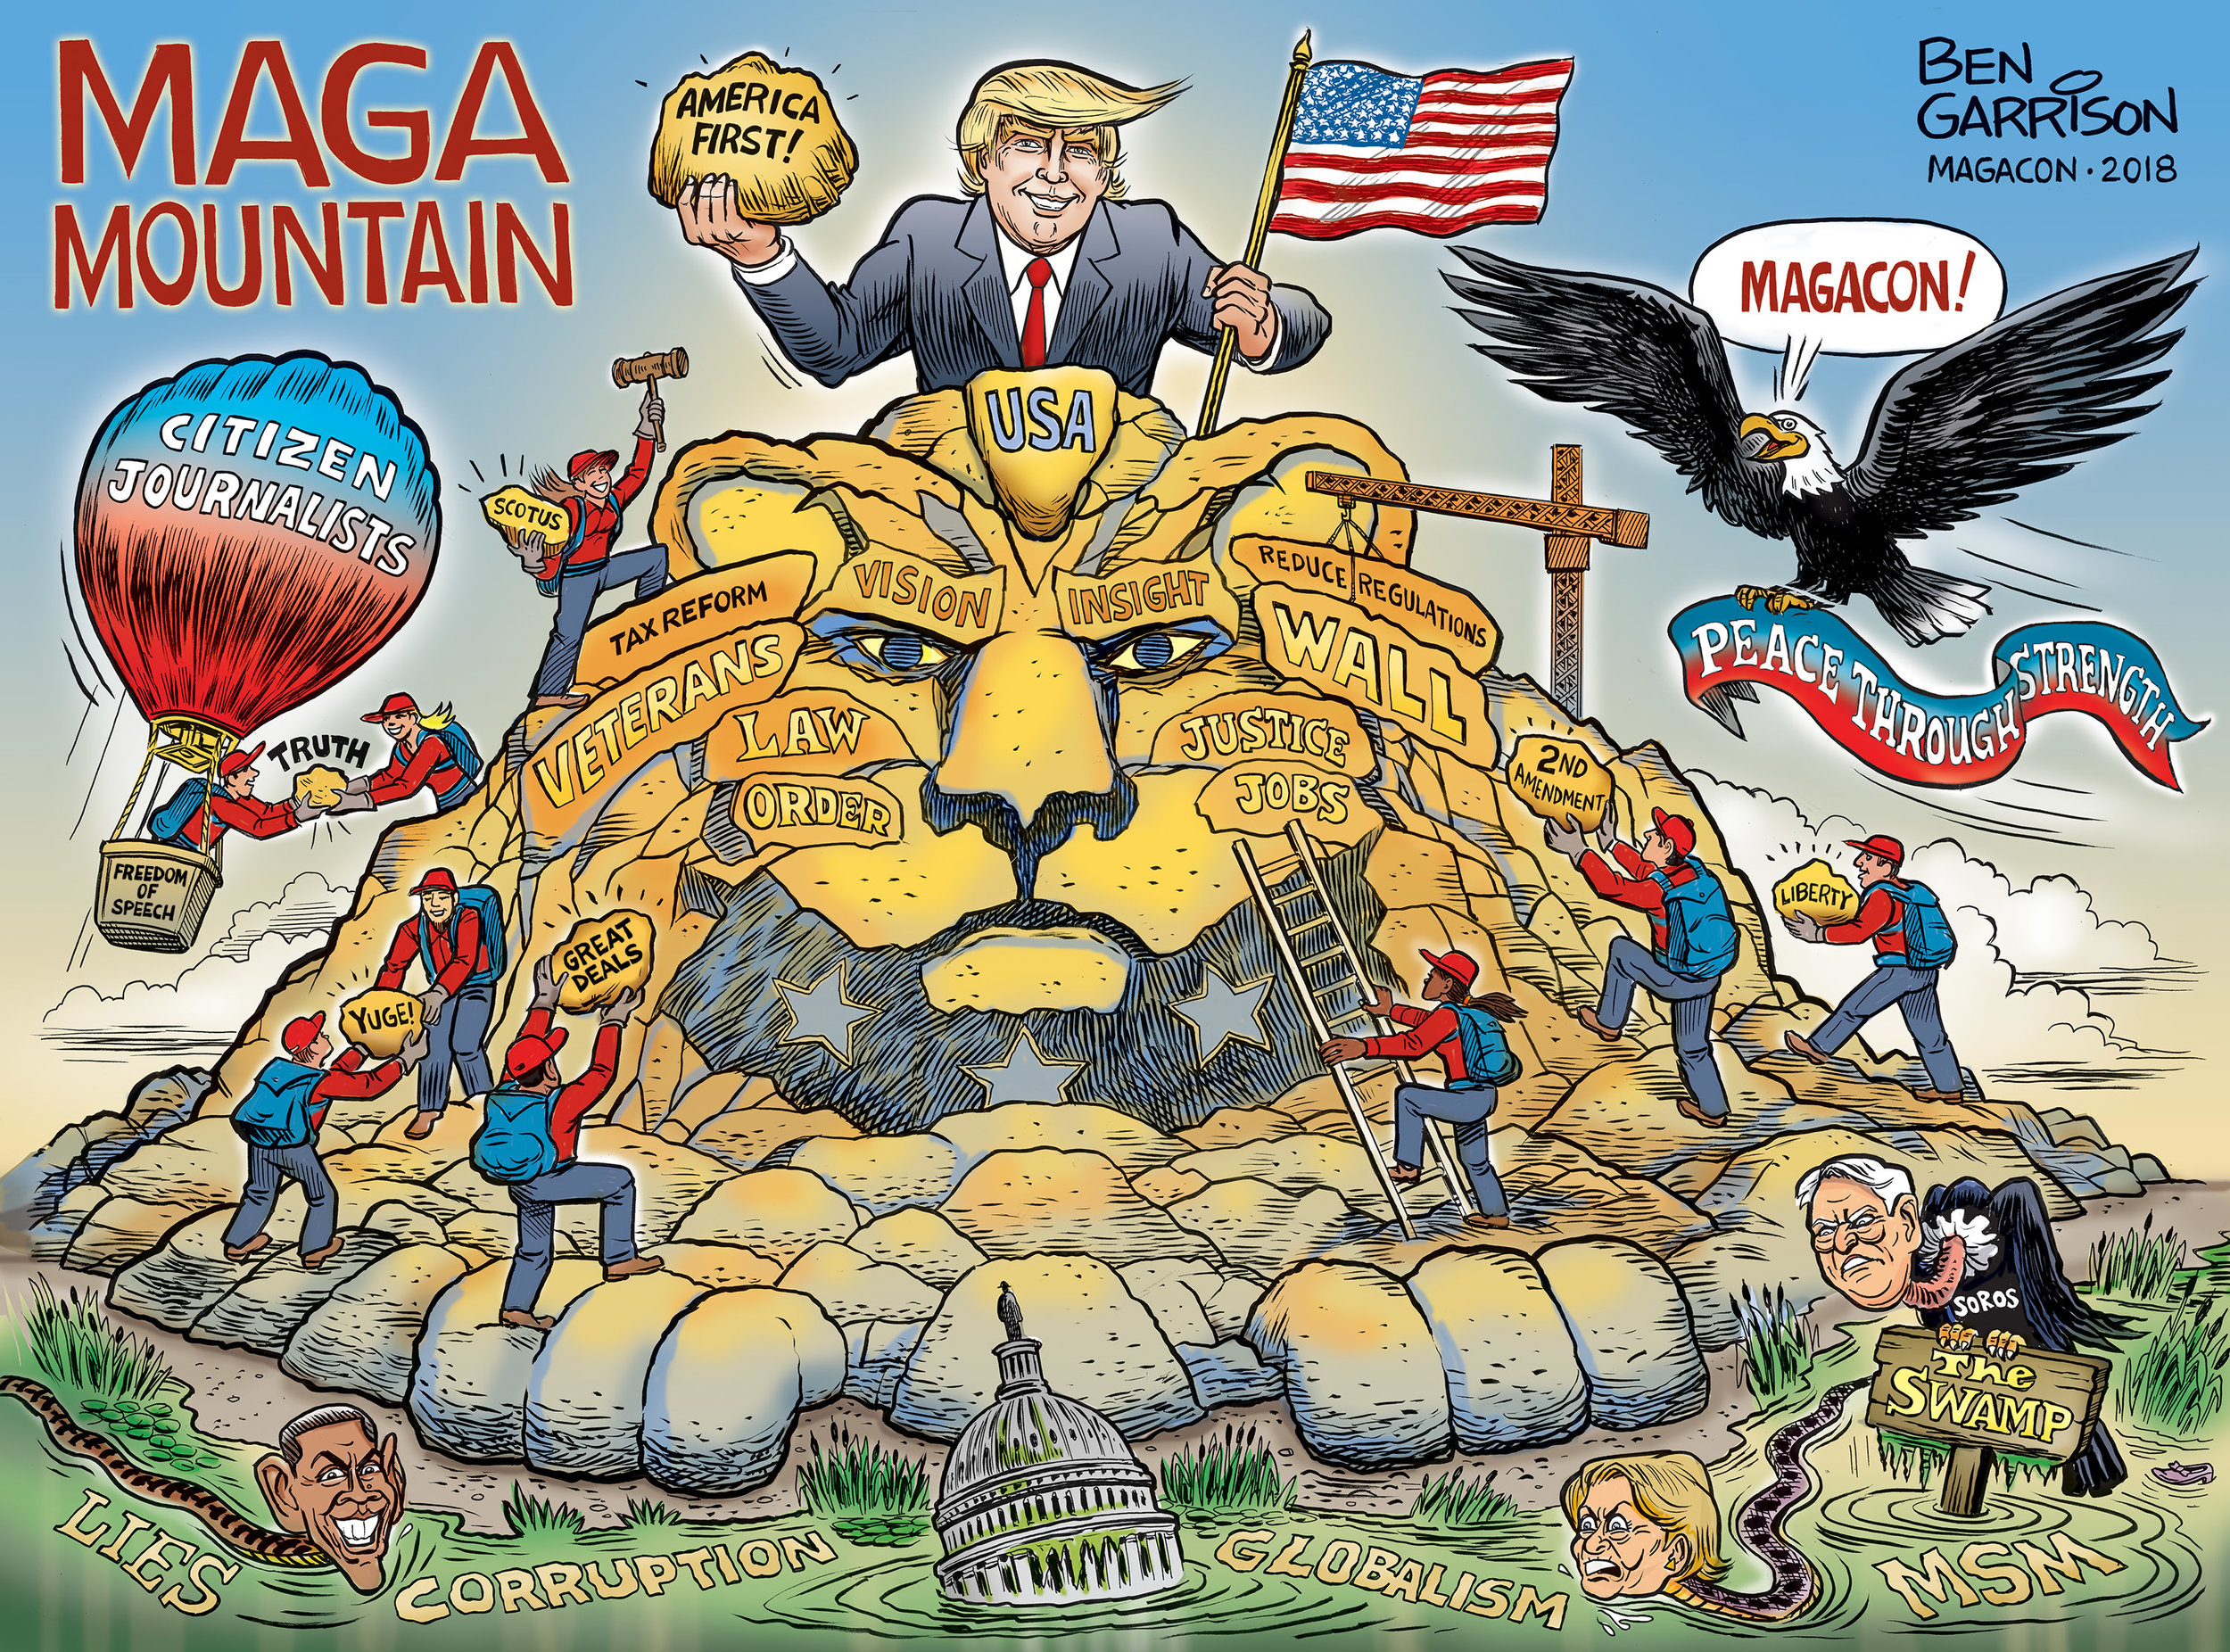 maga-mountain-ben-garrison-cartoon-1.jpg